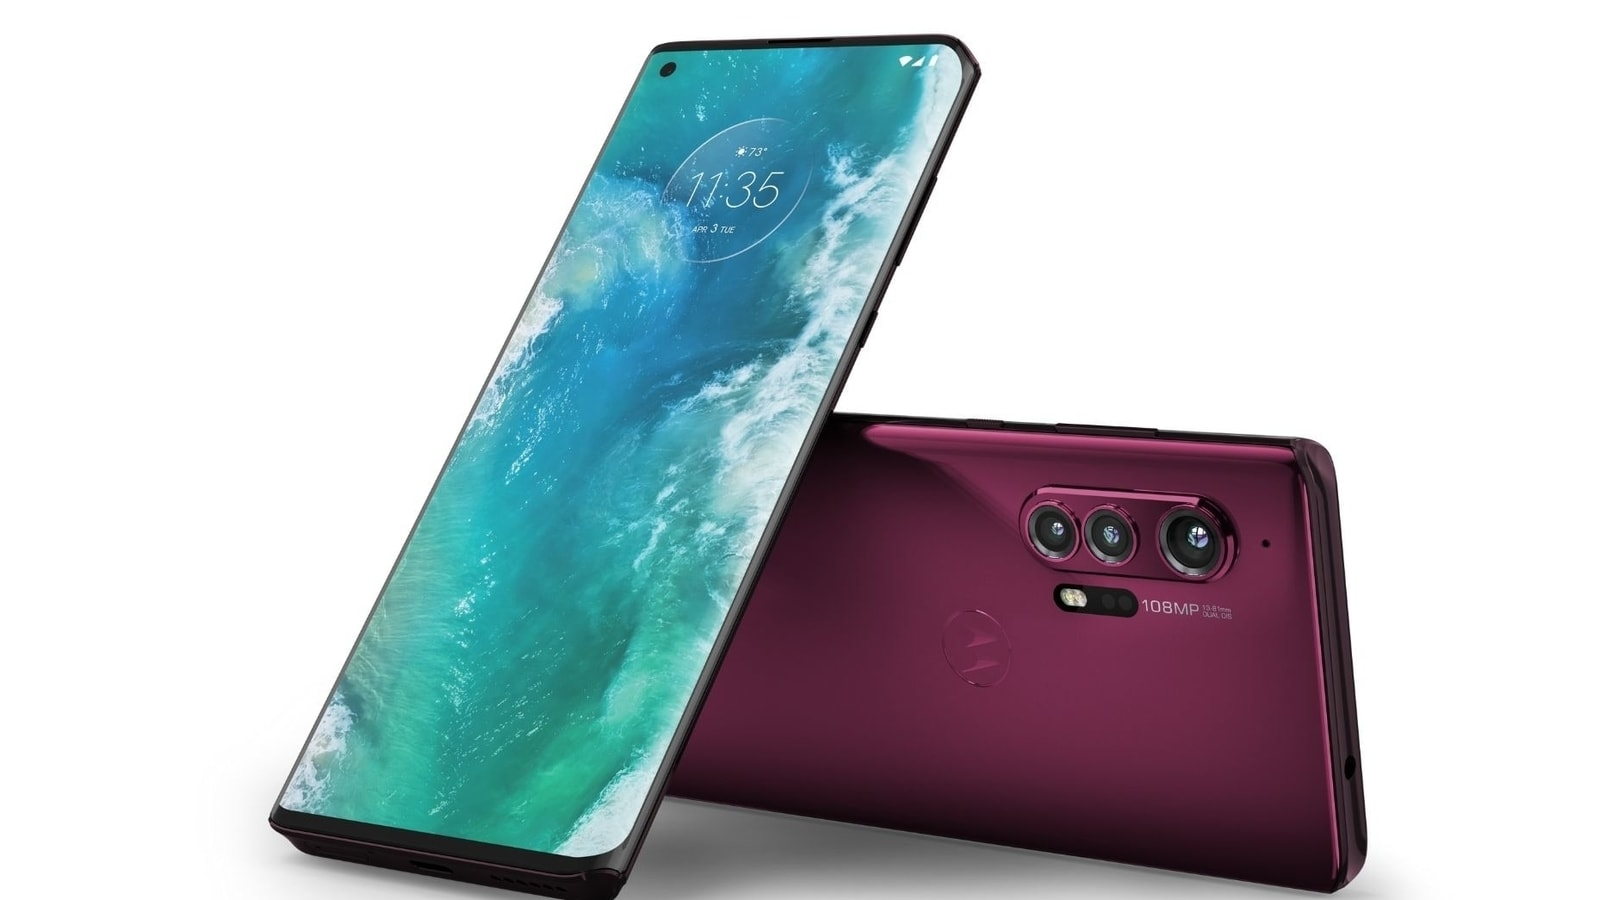 Motorola fan?  It is likely to launch 3 new smartphones in the Edge series soon;  take a look at the specifications of Berlin, Kyoto and Pstar